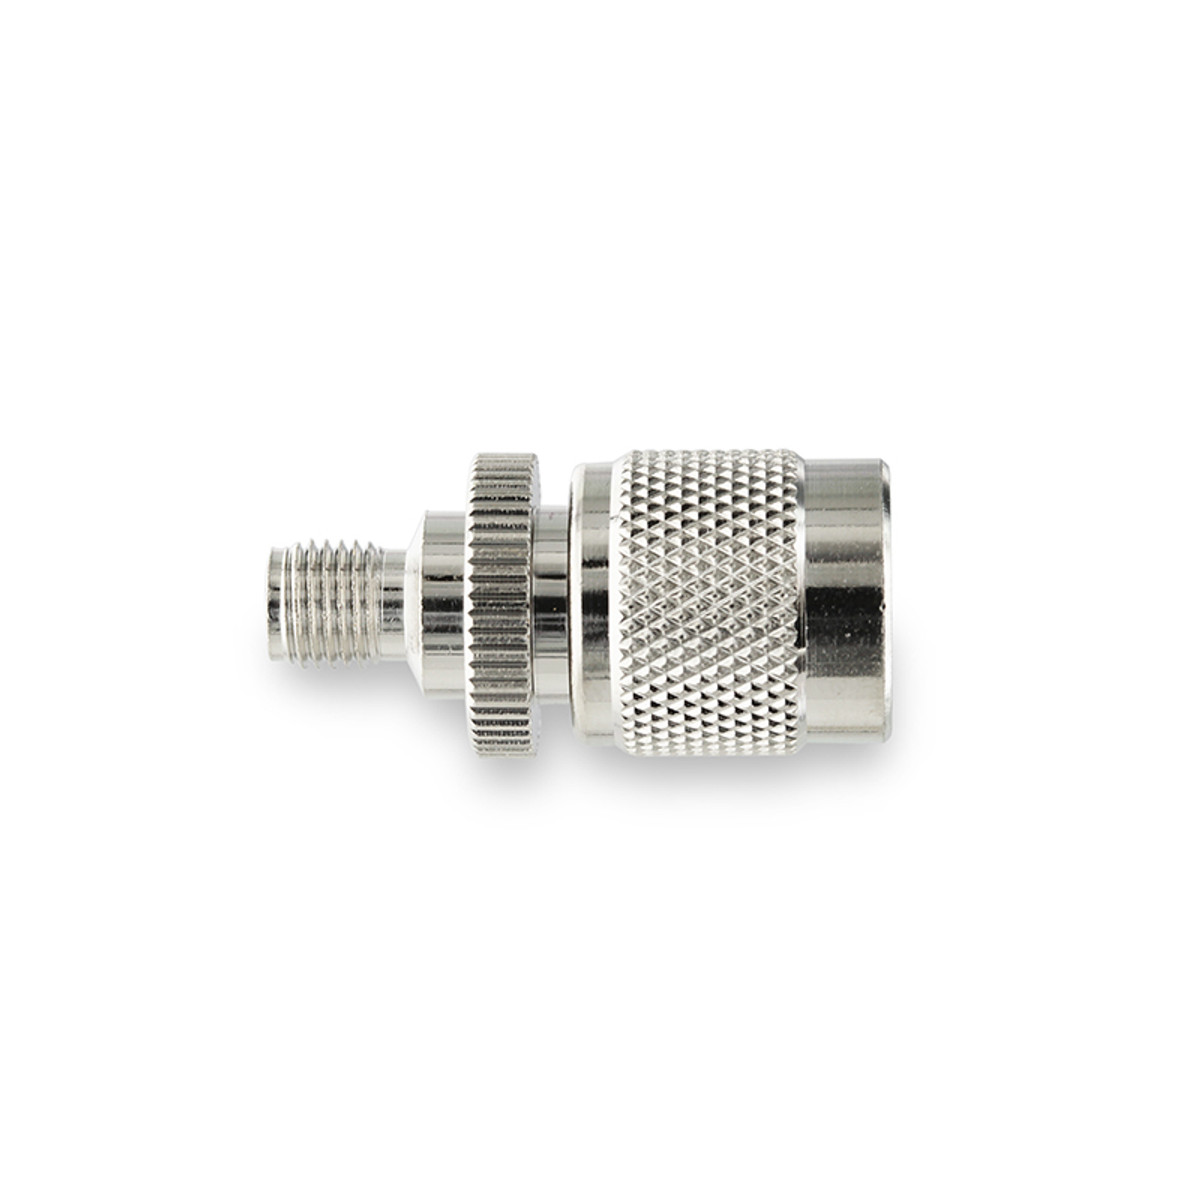 971155 SMA-Female to TNC-Male Connector | Side